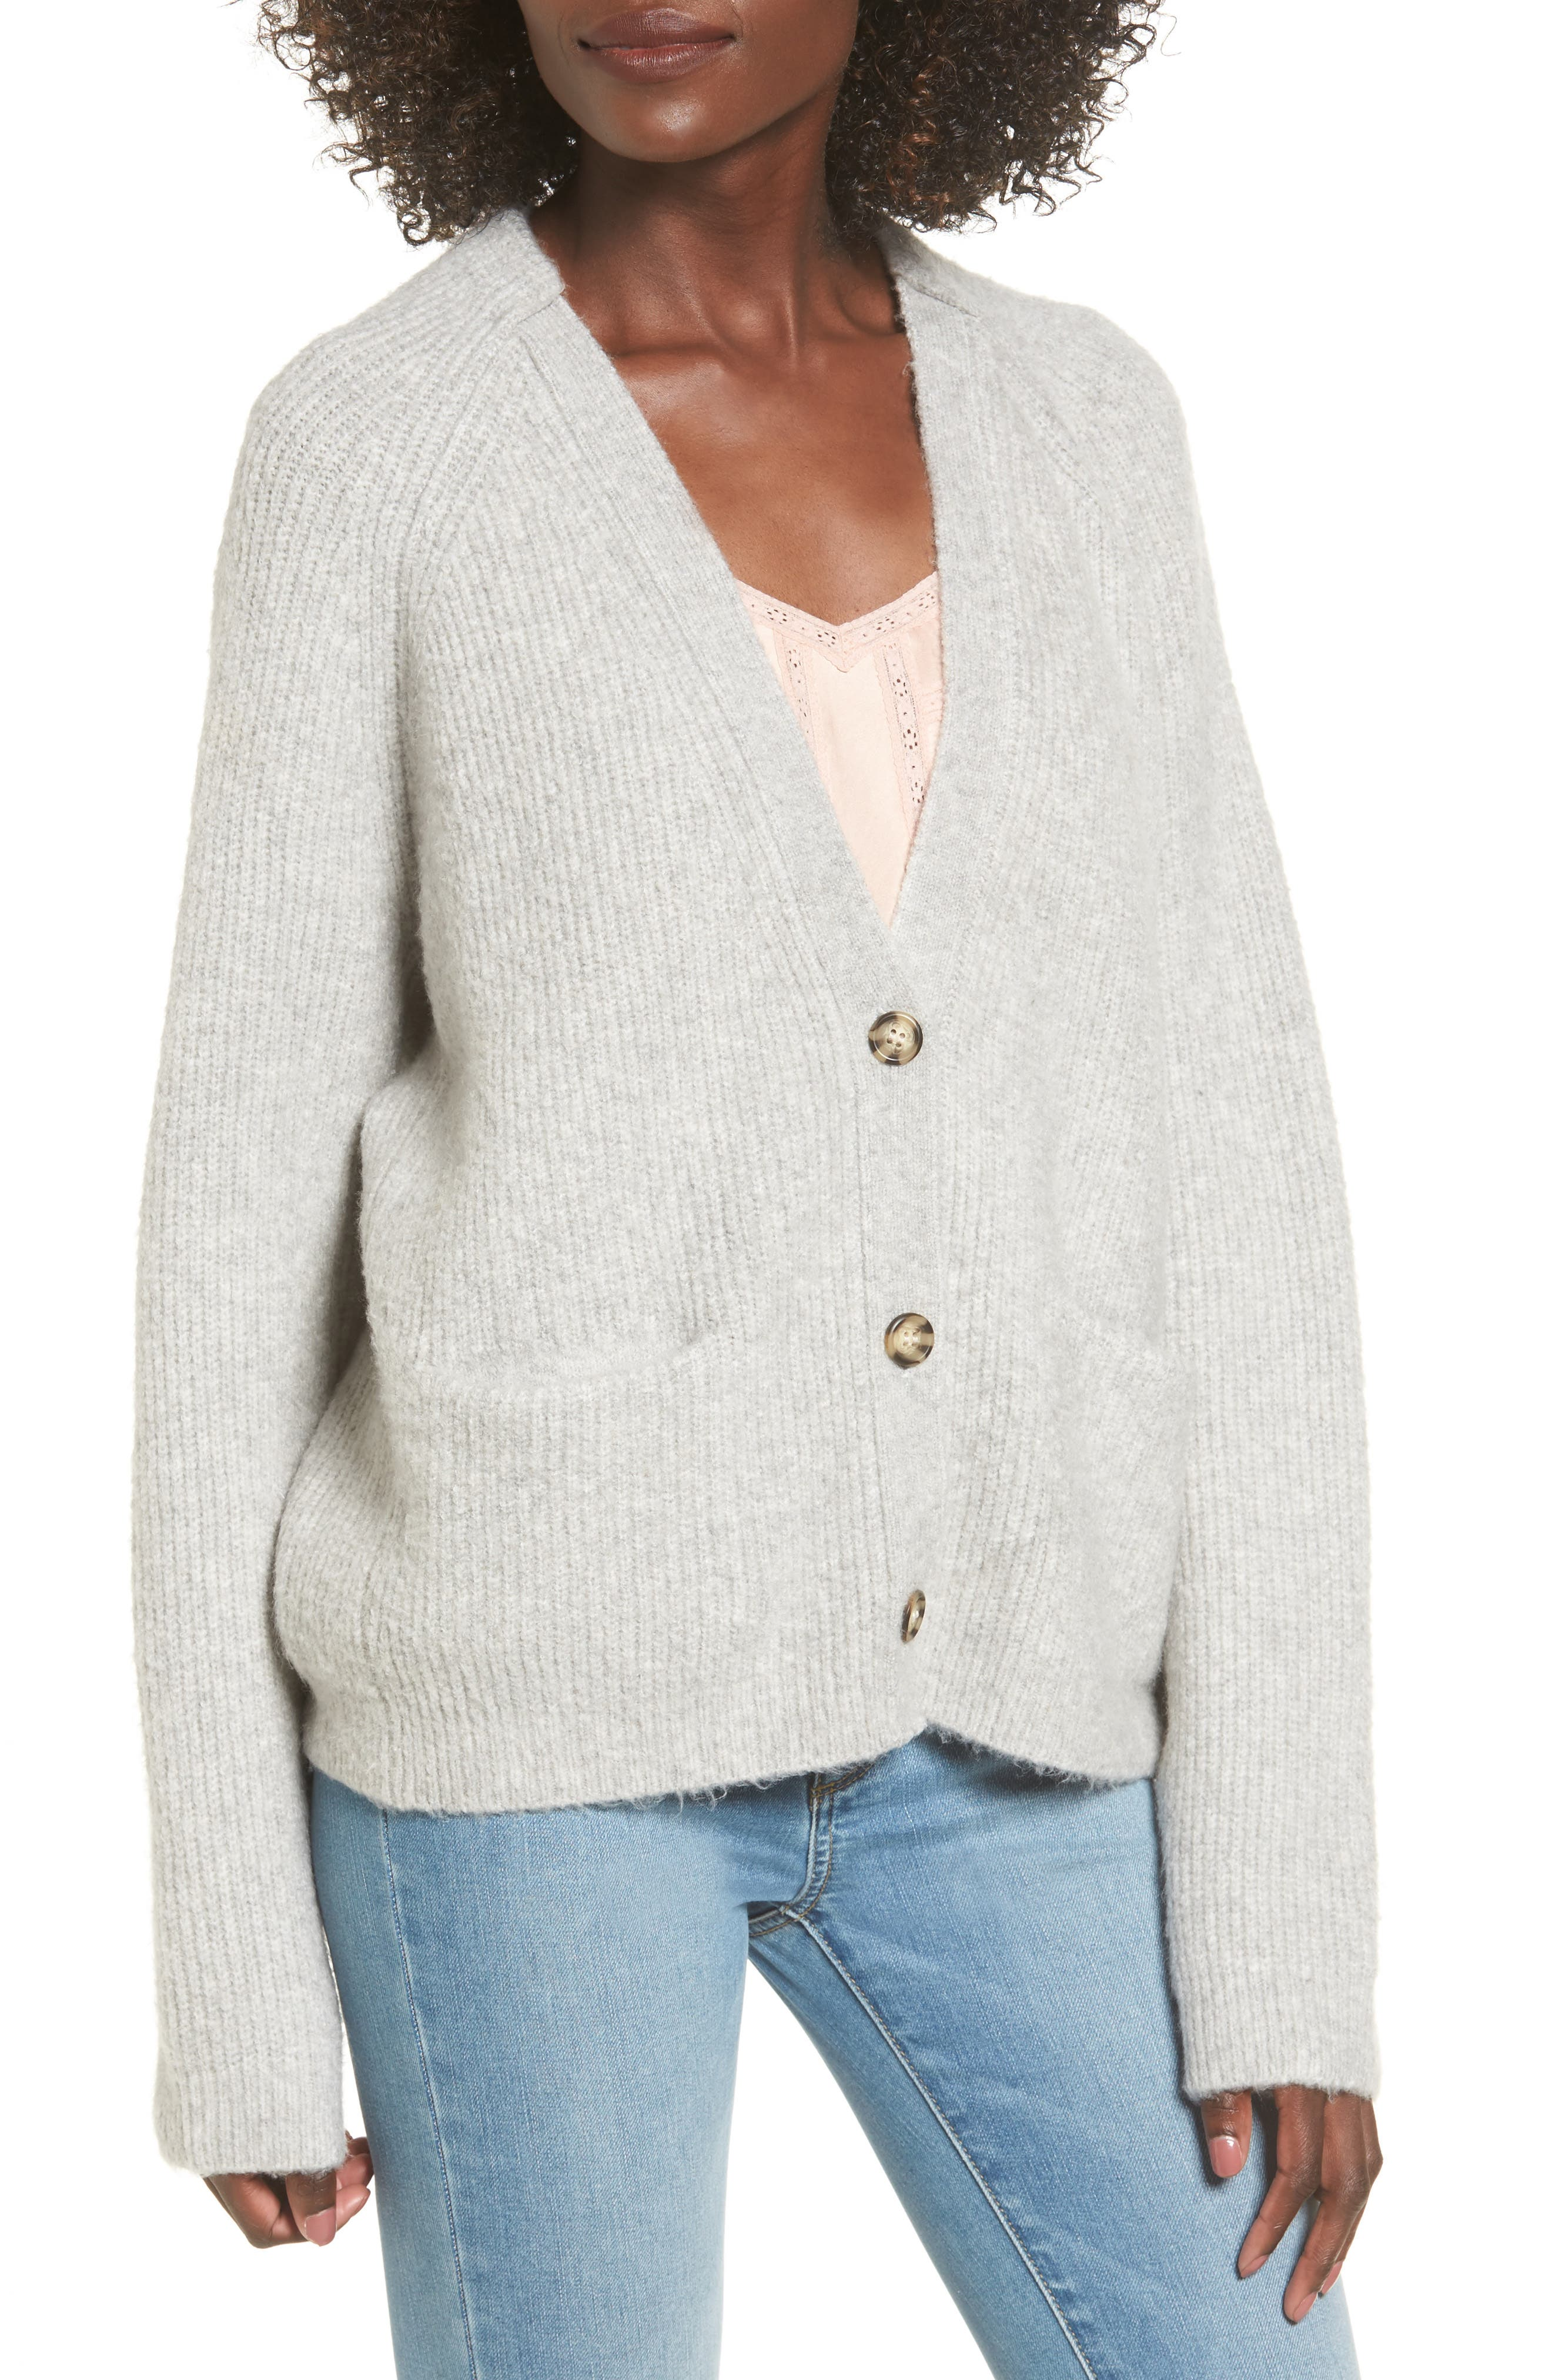 Cardigan Sweater,                         Main,                         color,